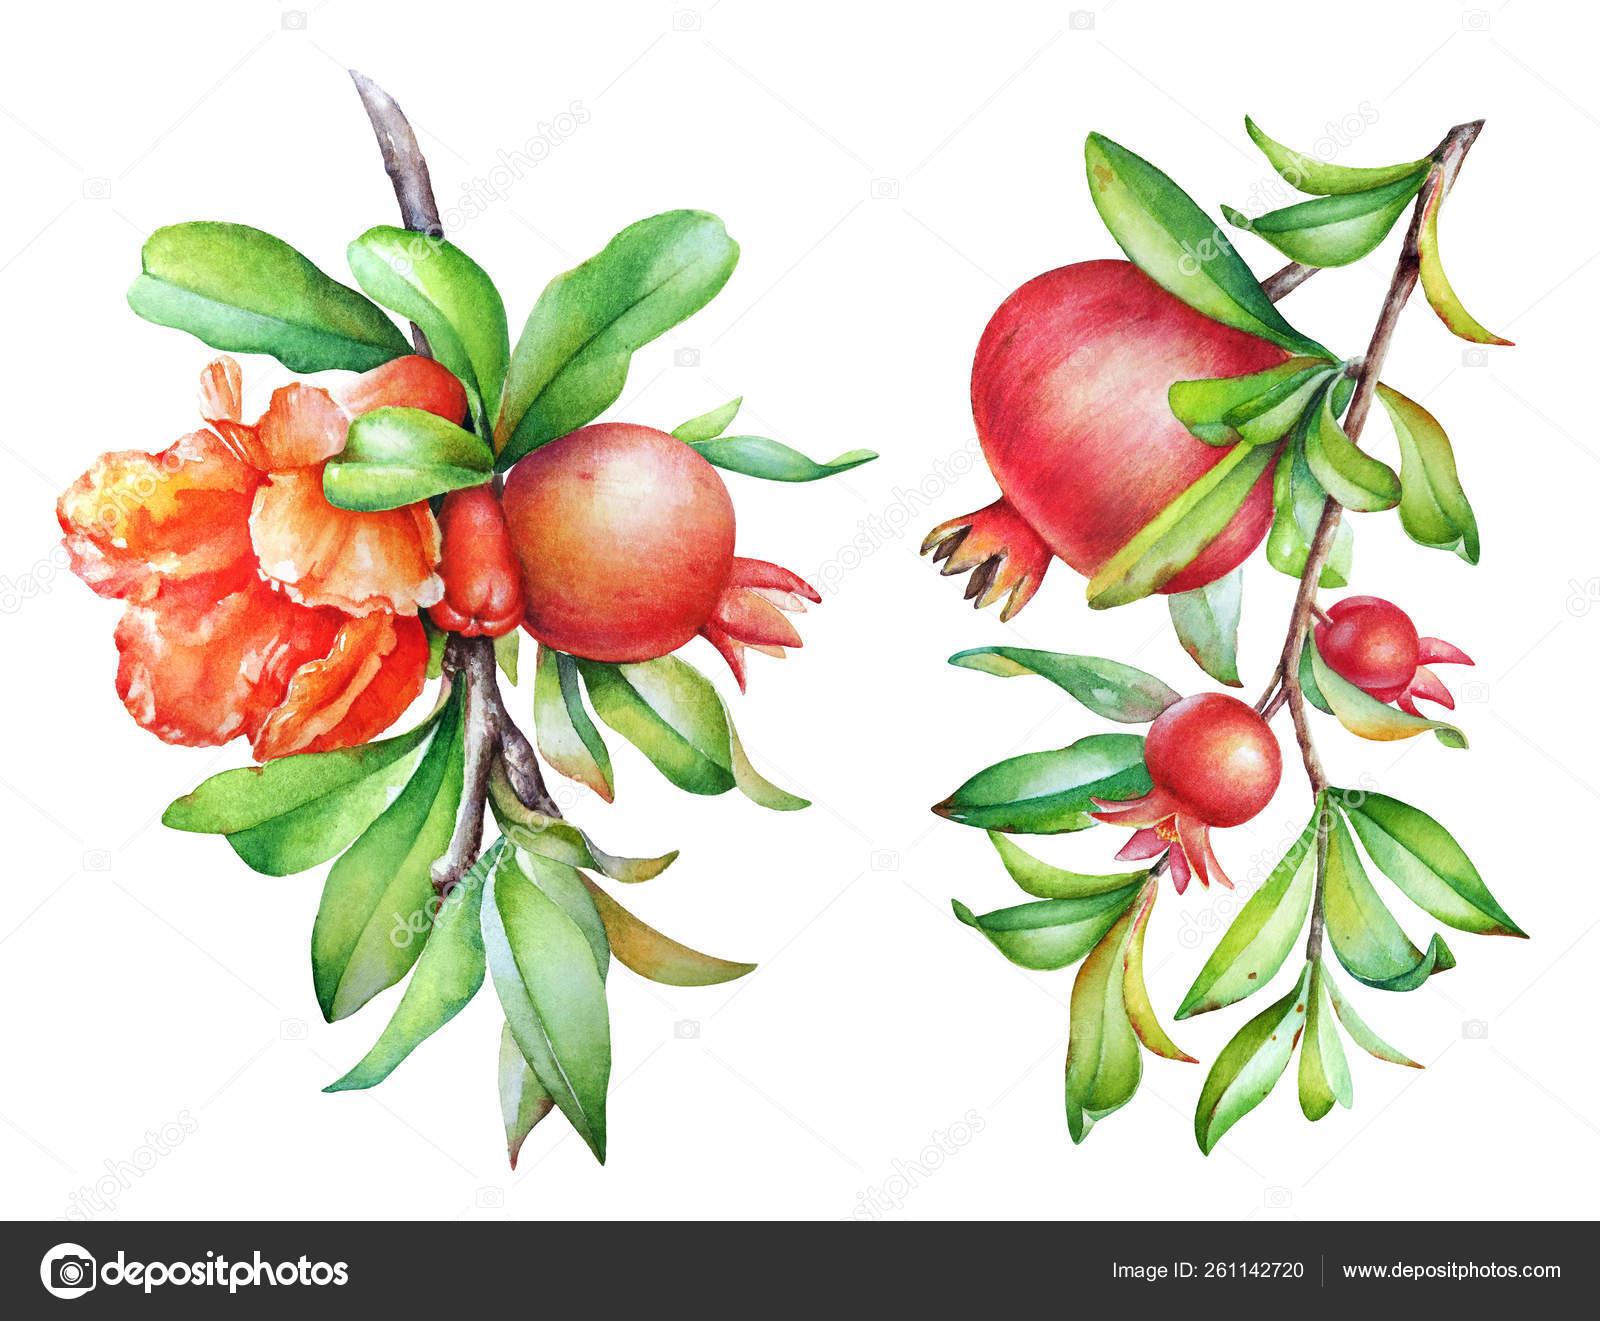 Watercolor Illustration Pomegranate Tree Branches Fruit Green Leaves Isolated White Stock Photo Image By C Lyubovtolstova 261142720